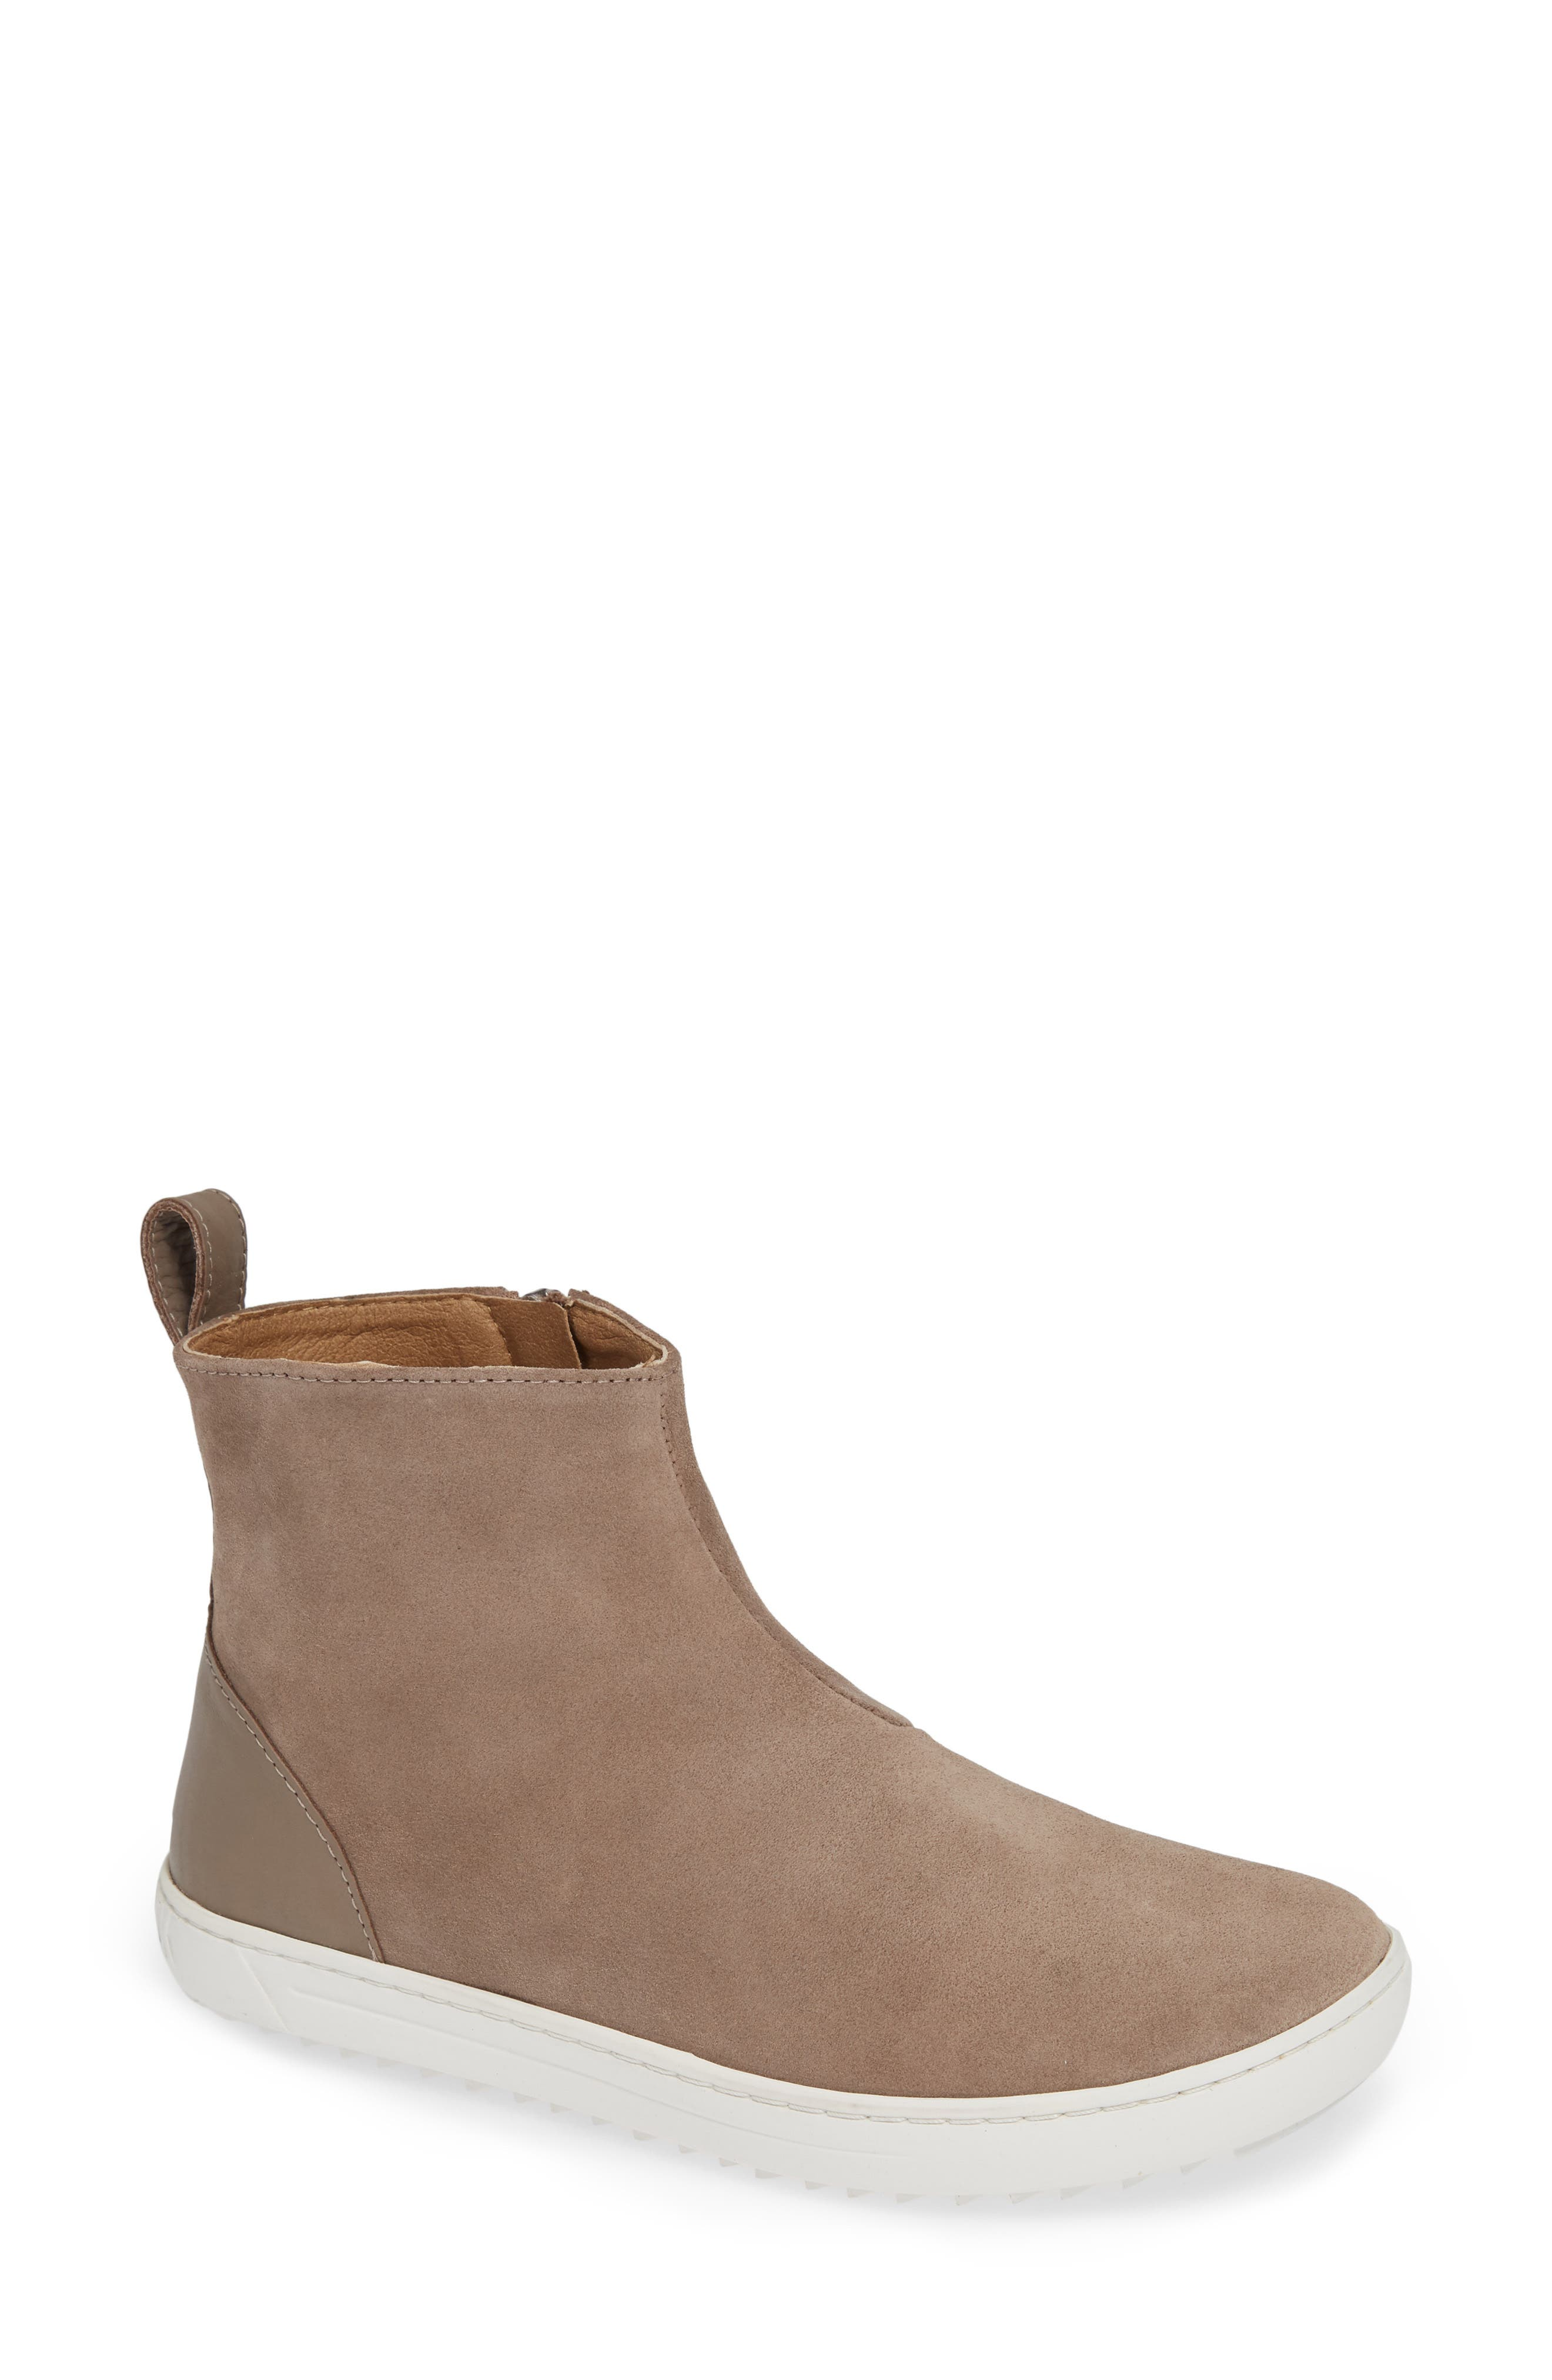 Myra High Top Sneaker,                         Main,                         color, TAUPE SUEDE